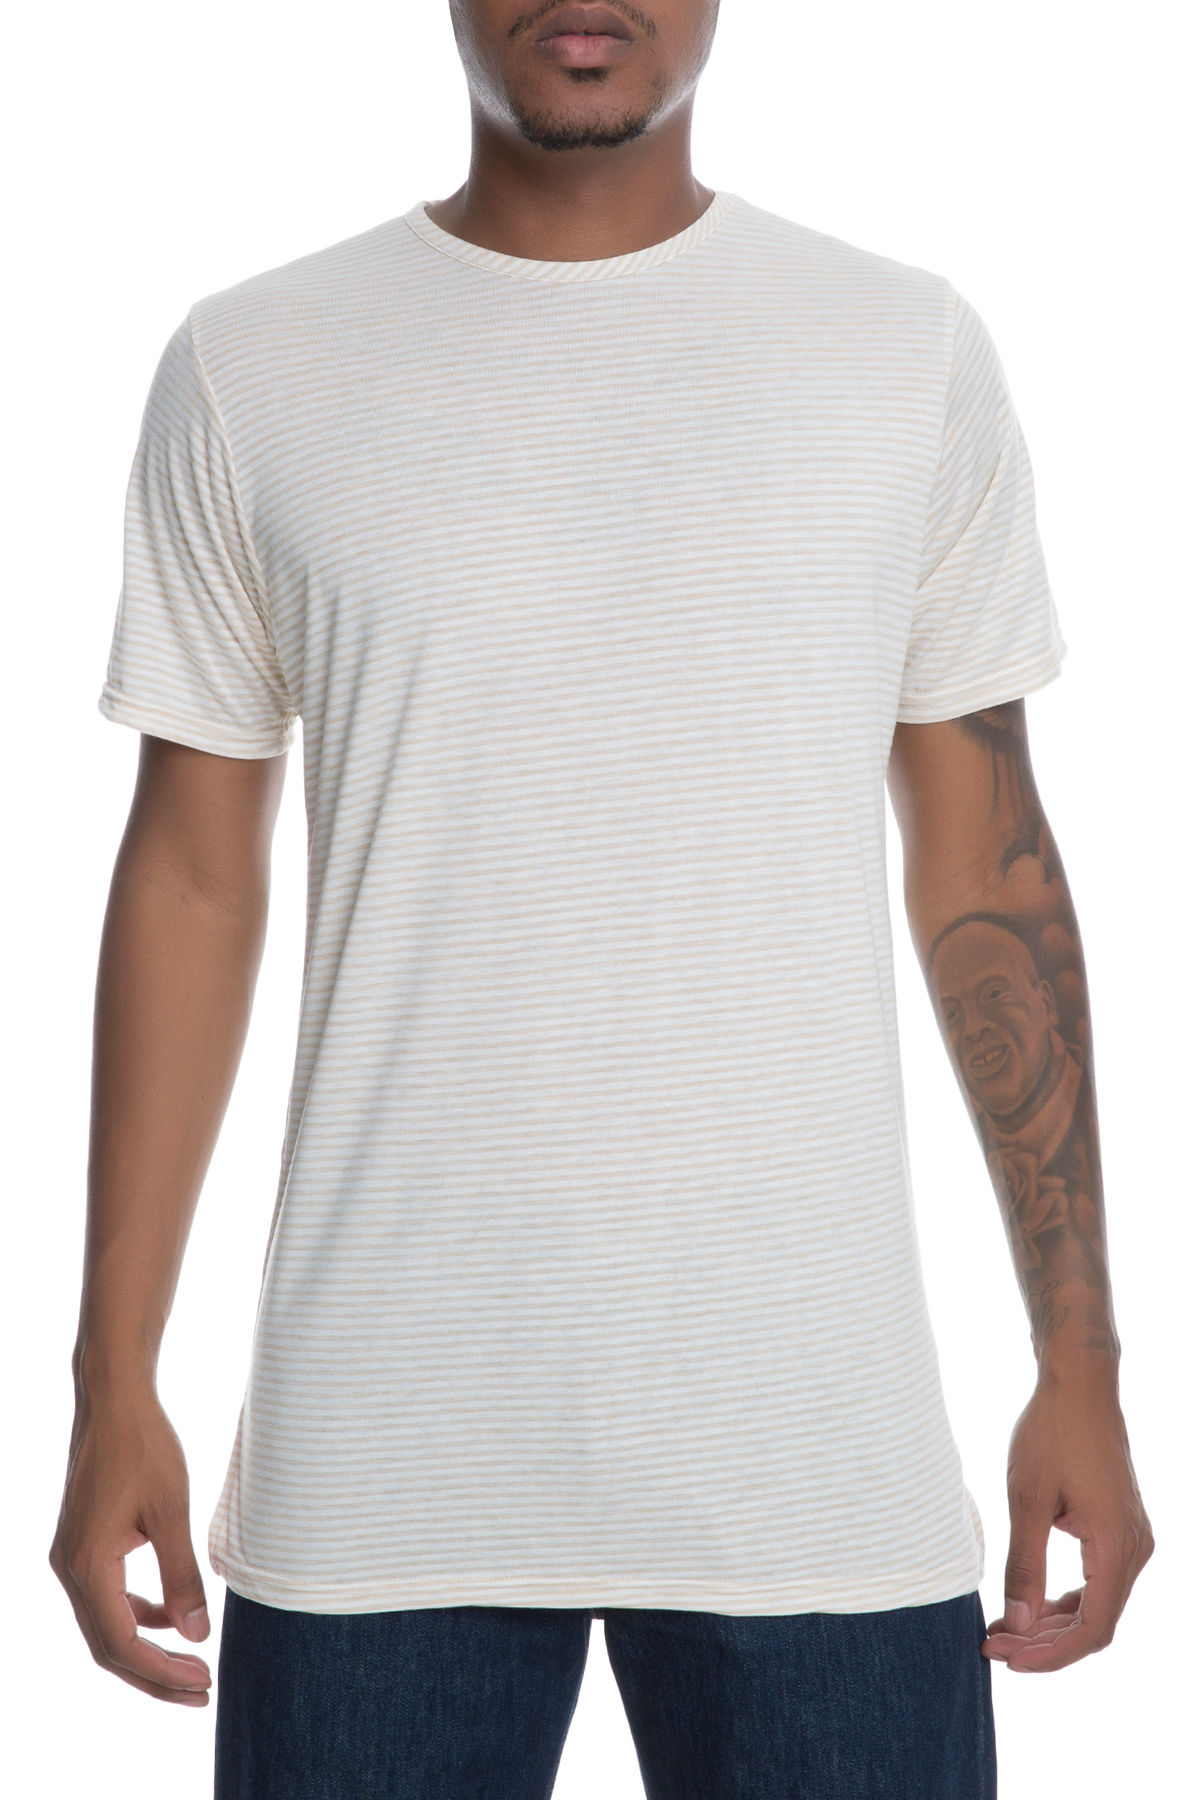 Image of The Swish Short Sleeve Elongated Tee in Tan and White Stripe